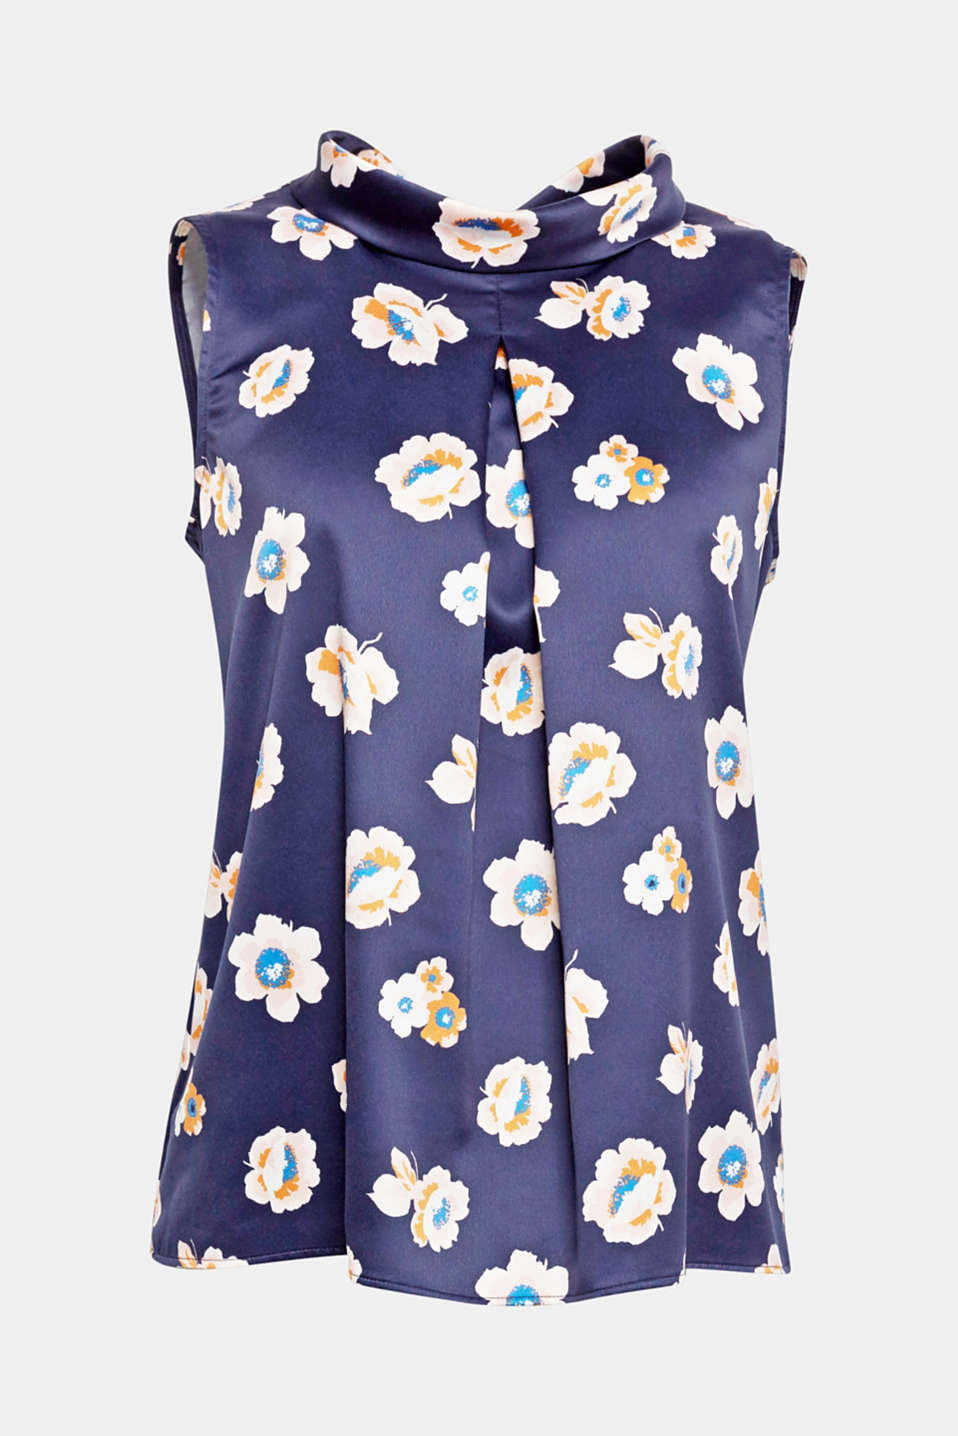 Feminine Flower Power! This blouse is distinguished by the inset pleat, floral print and turn-down collar.